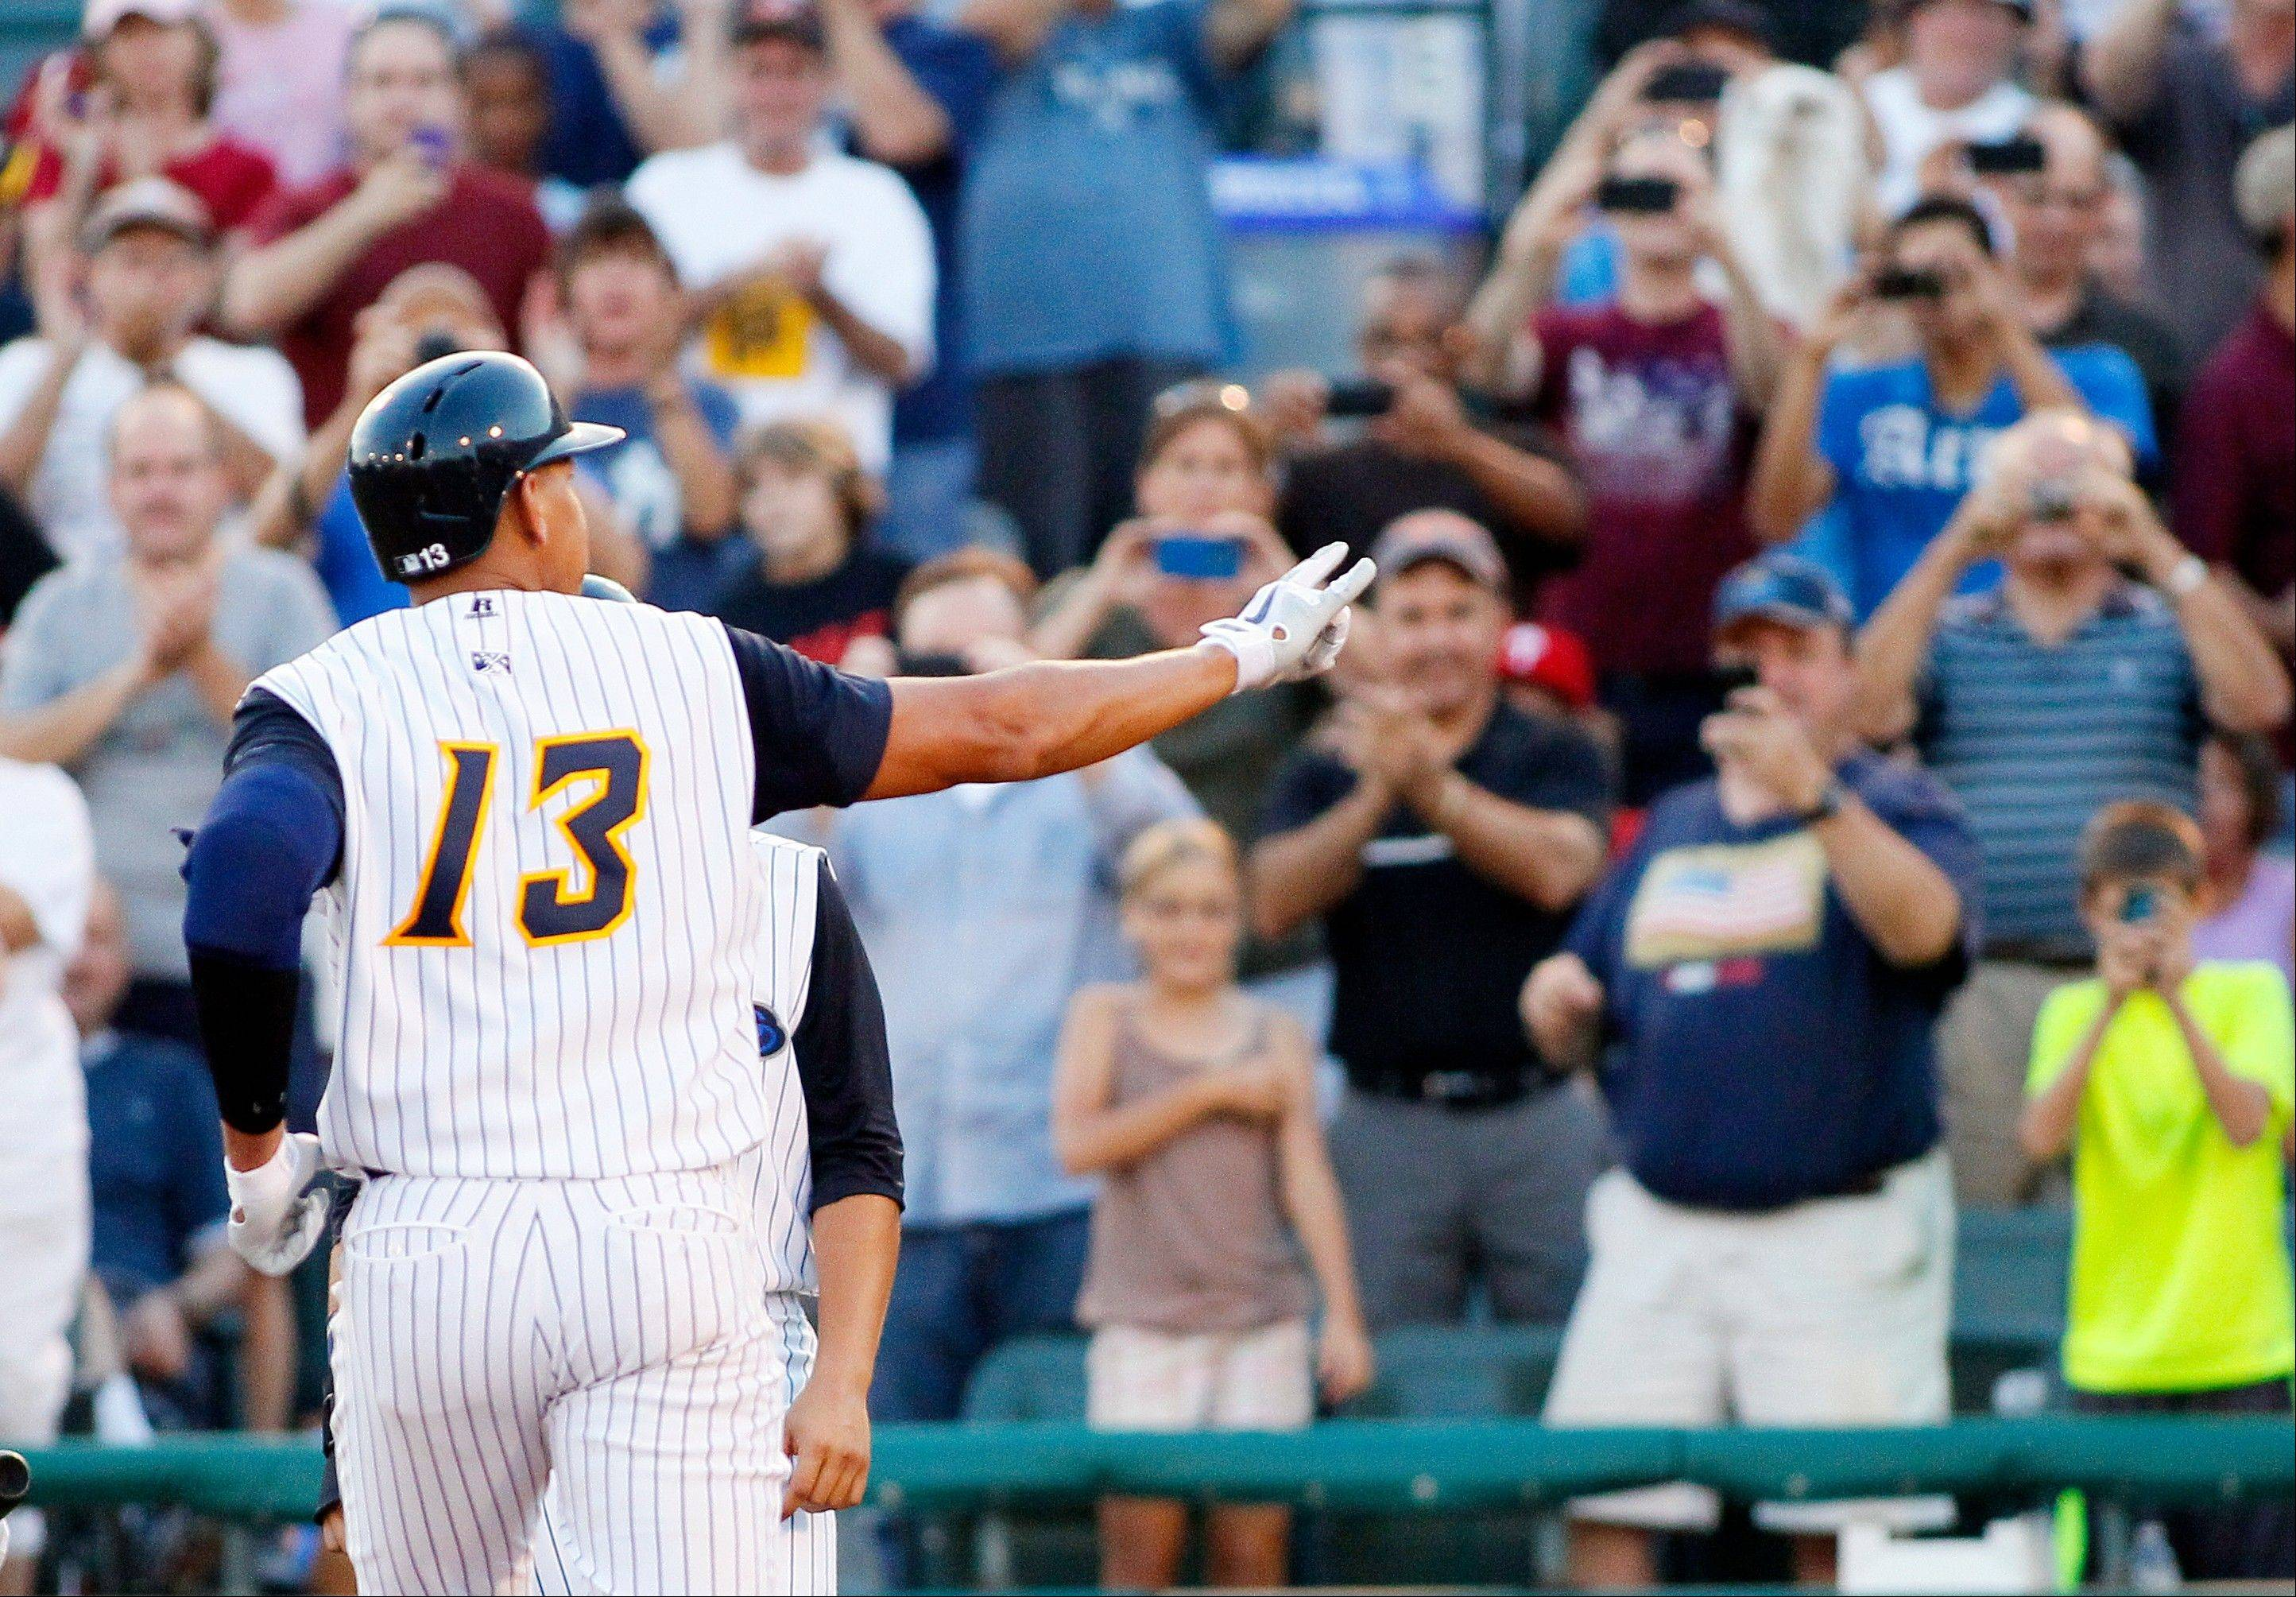 New York Yankees' Alex Rodriguez gestures to the fans as he crosses home plate after hitting a solo home run during the third inning of a Class AA baseball game with the Trenton Thunder against the Reading Phillies, Friday, Aug. 2, 2013, in Trenton, N.J.